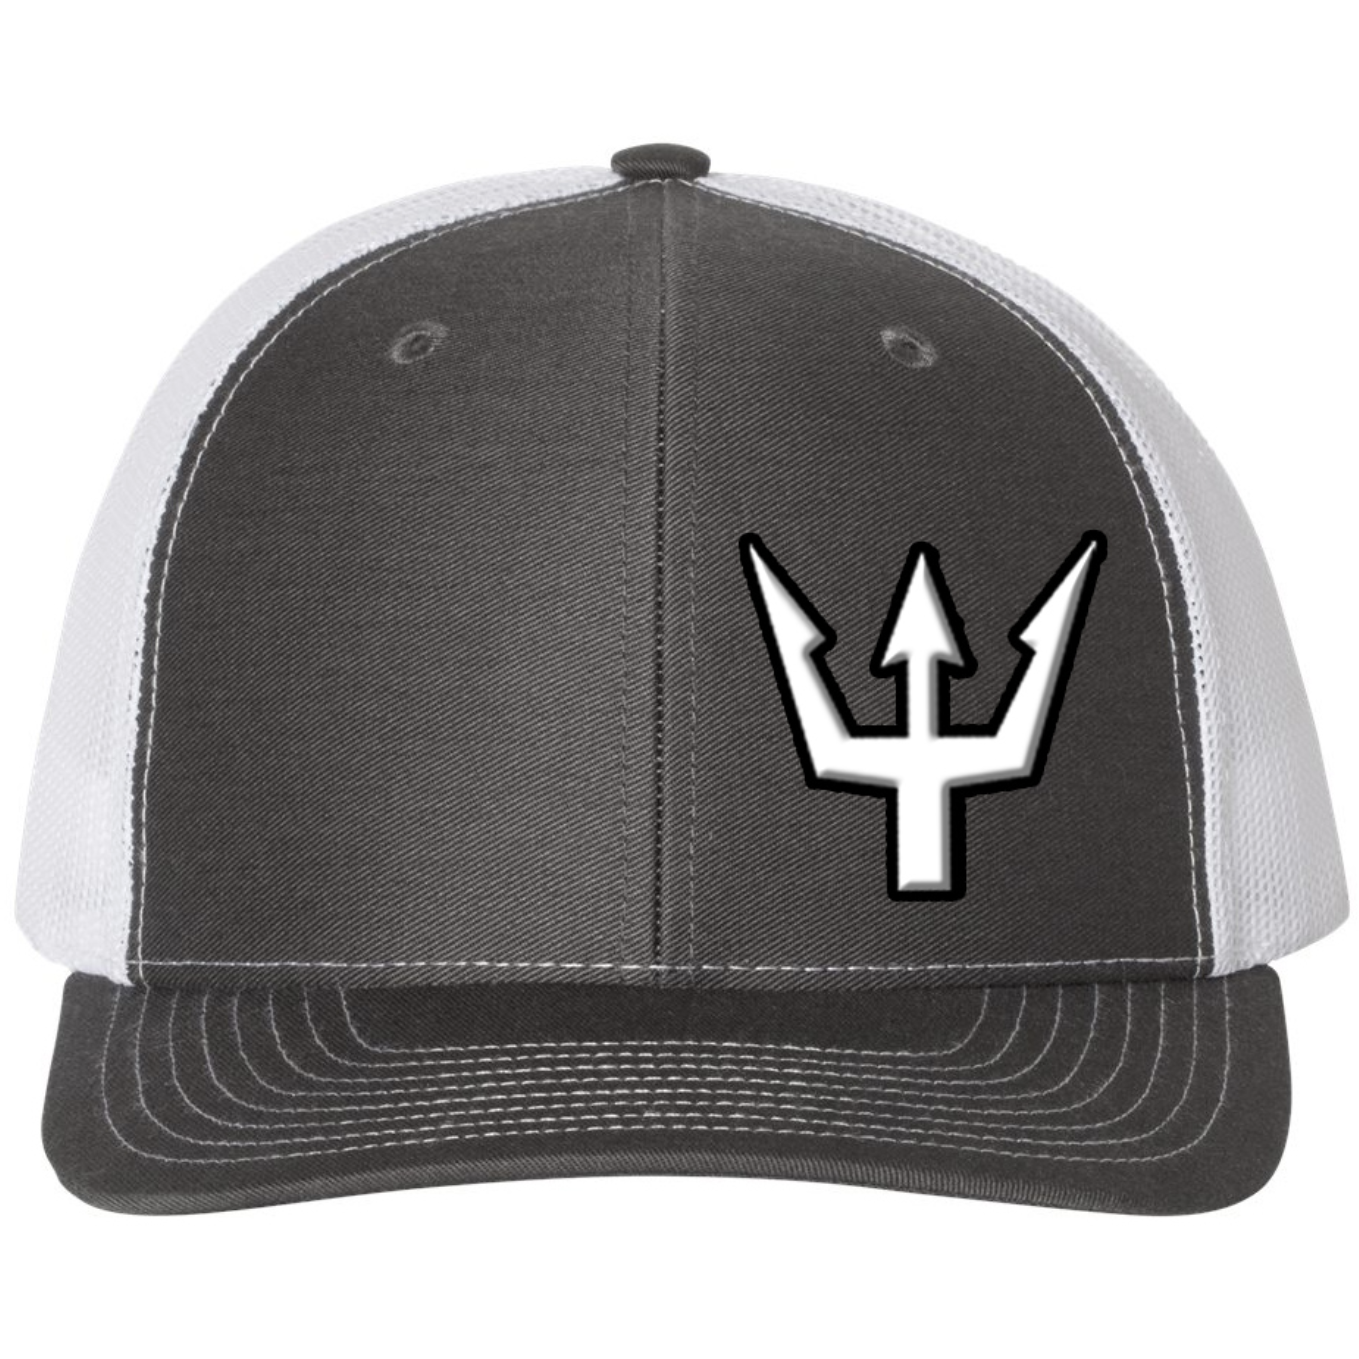 Waterman's Wear Trident Logo Dual Color Adjustable Trucker Hat - Charcoal with White